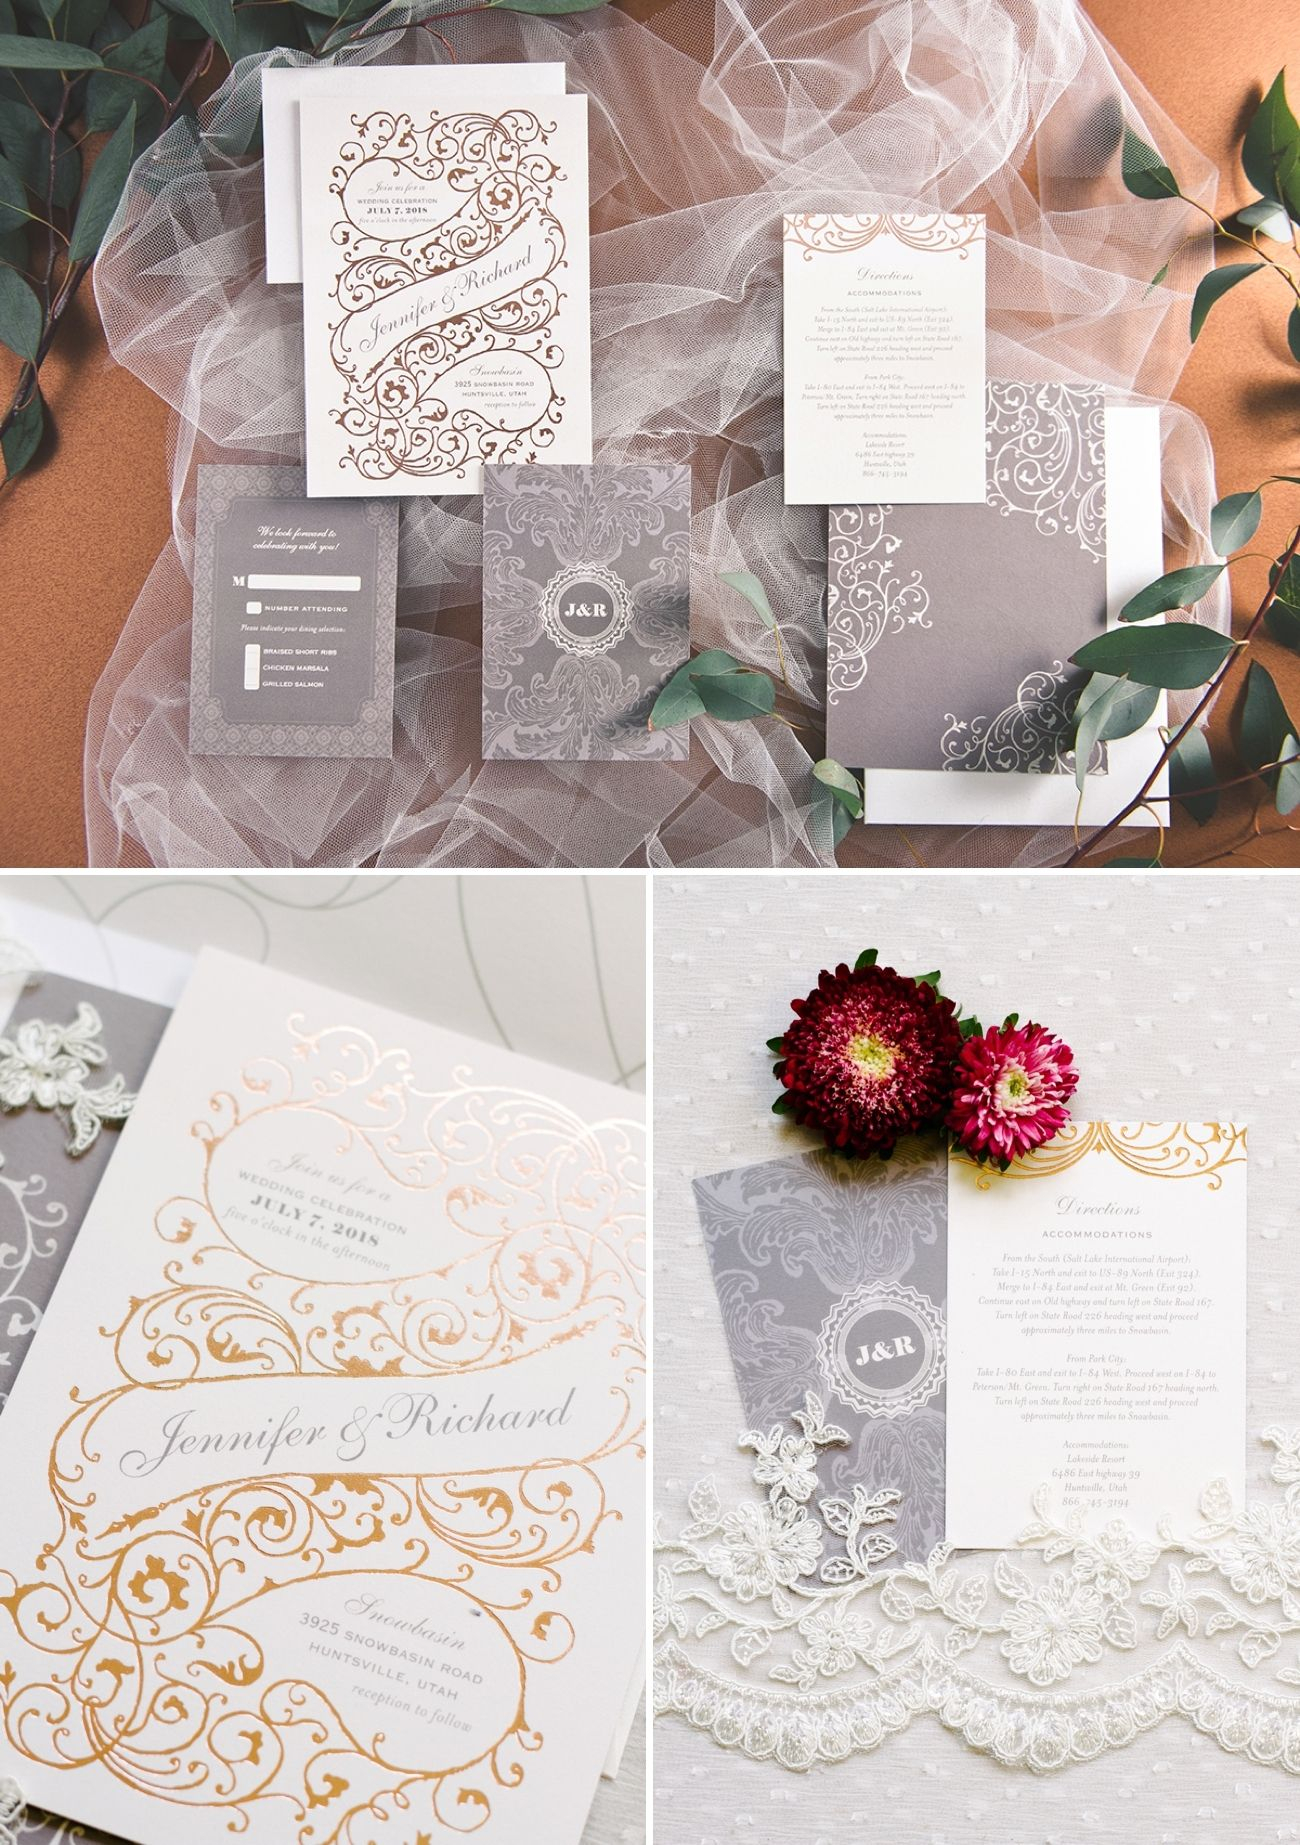 Invitations For Every Wedding Style From Wedding Paper Divas Wedding Paper Wedding Paper Divas Paper Divas